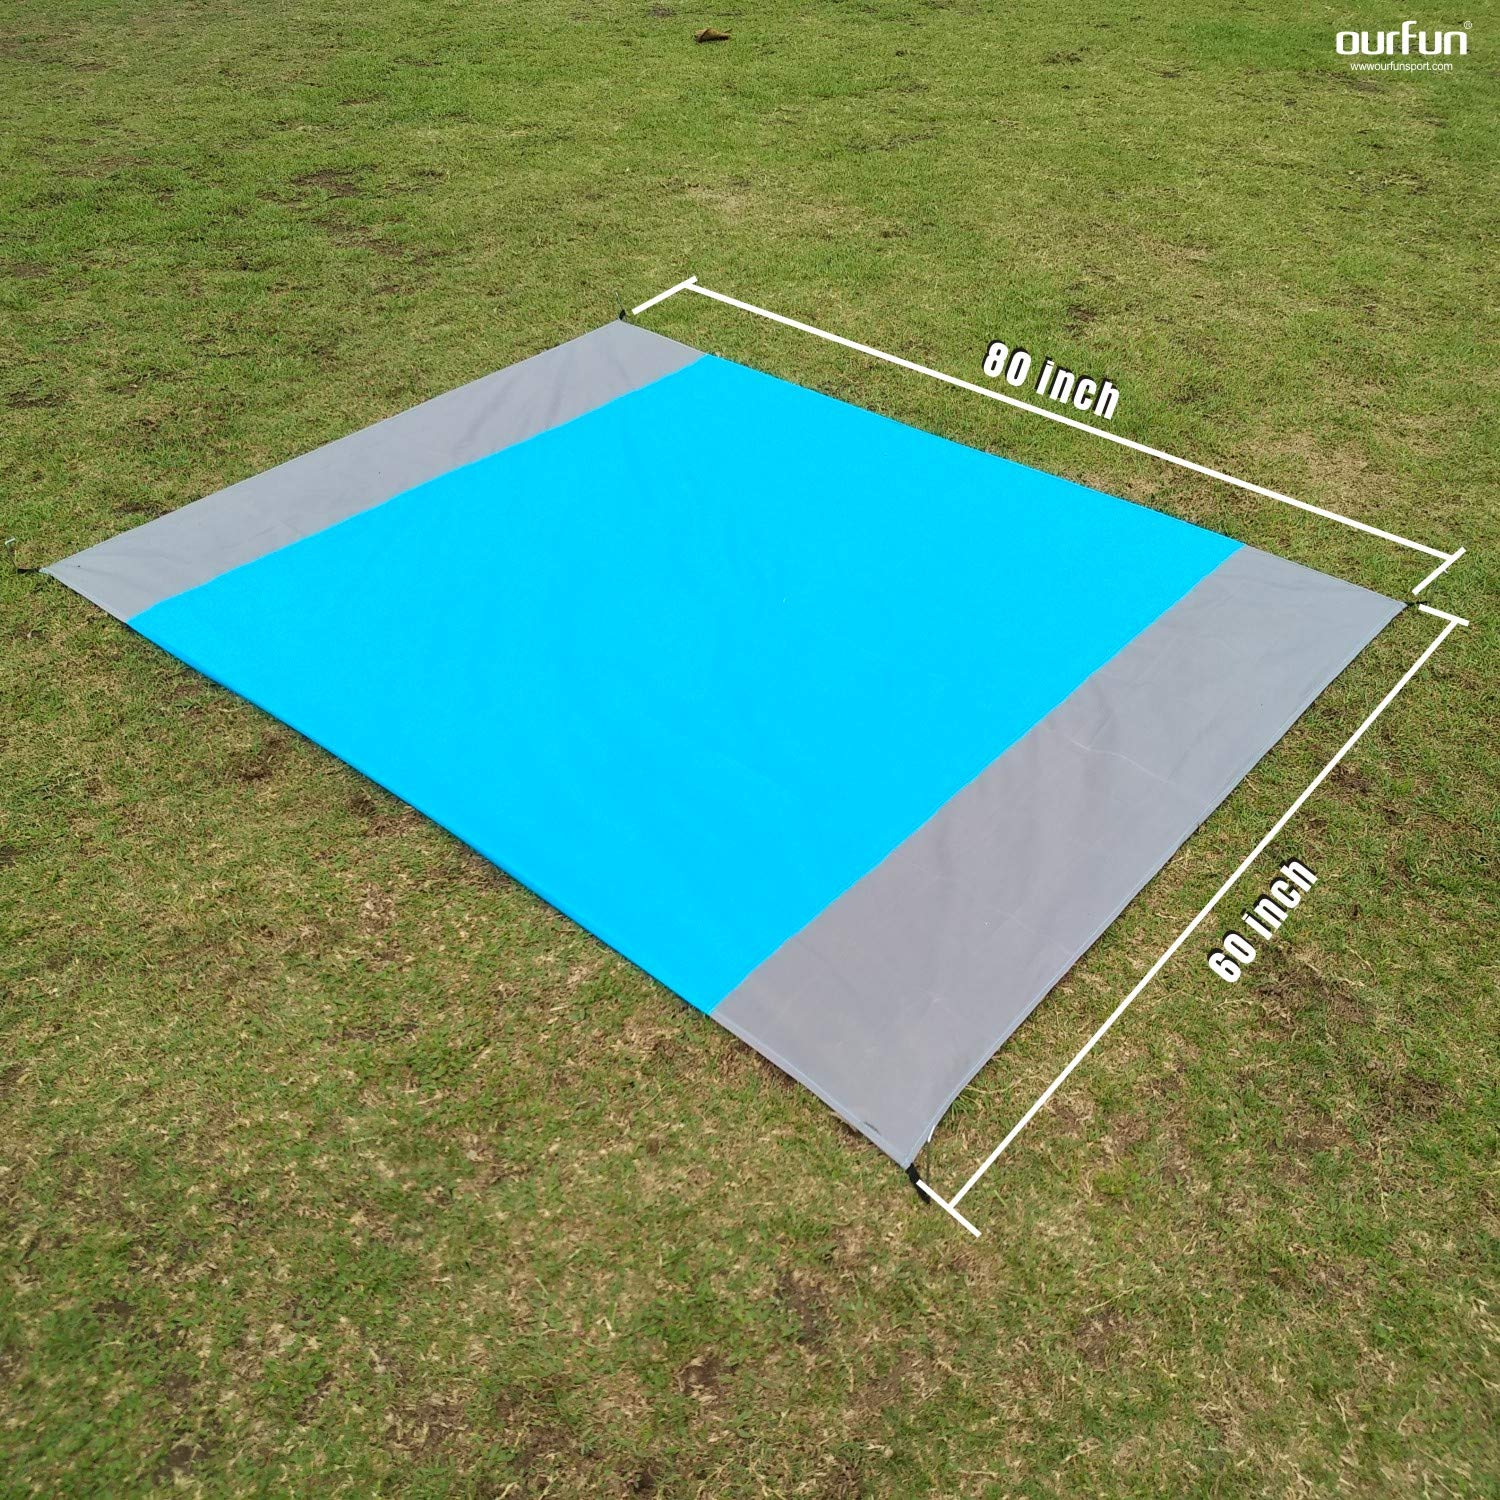 ourfun Pocket Beach Blanket Reflective Fabric Greenhouse Portable Family Picnic Mat Outdoor Camping Travel Backyard Foldable Durable Machine Washable Pouch 80''x60'', Blue